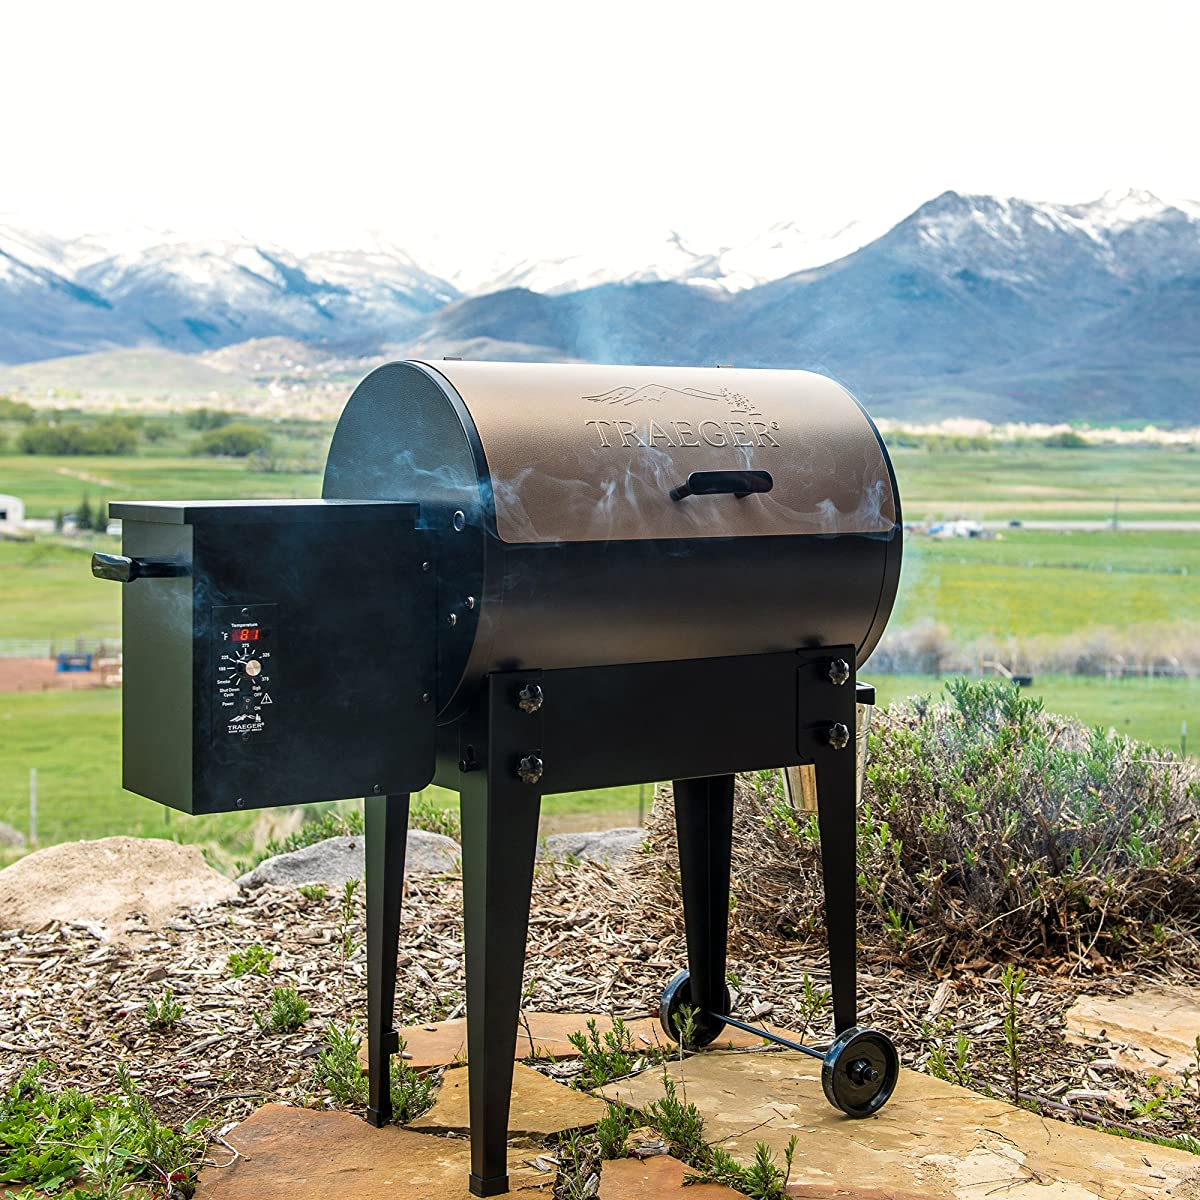 Traeger Grills Junior Elite Wood Pellet Grill and Smoker - Grill, Smoke, Bake, Roast, Braise, and BBQ (Bronze)